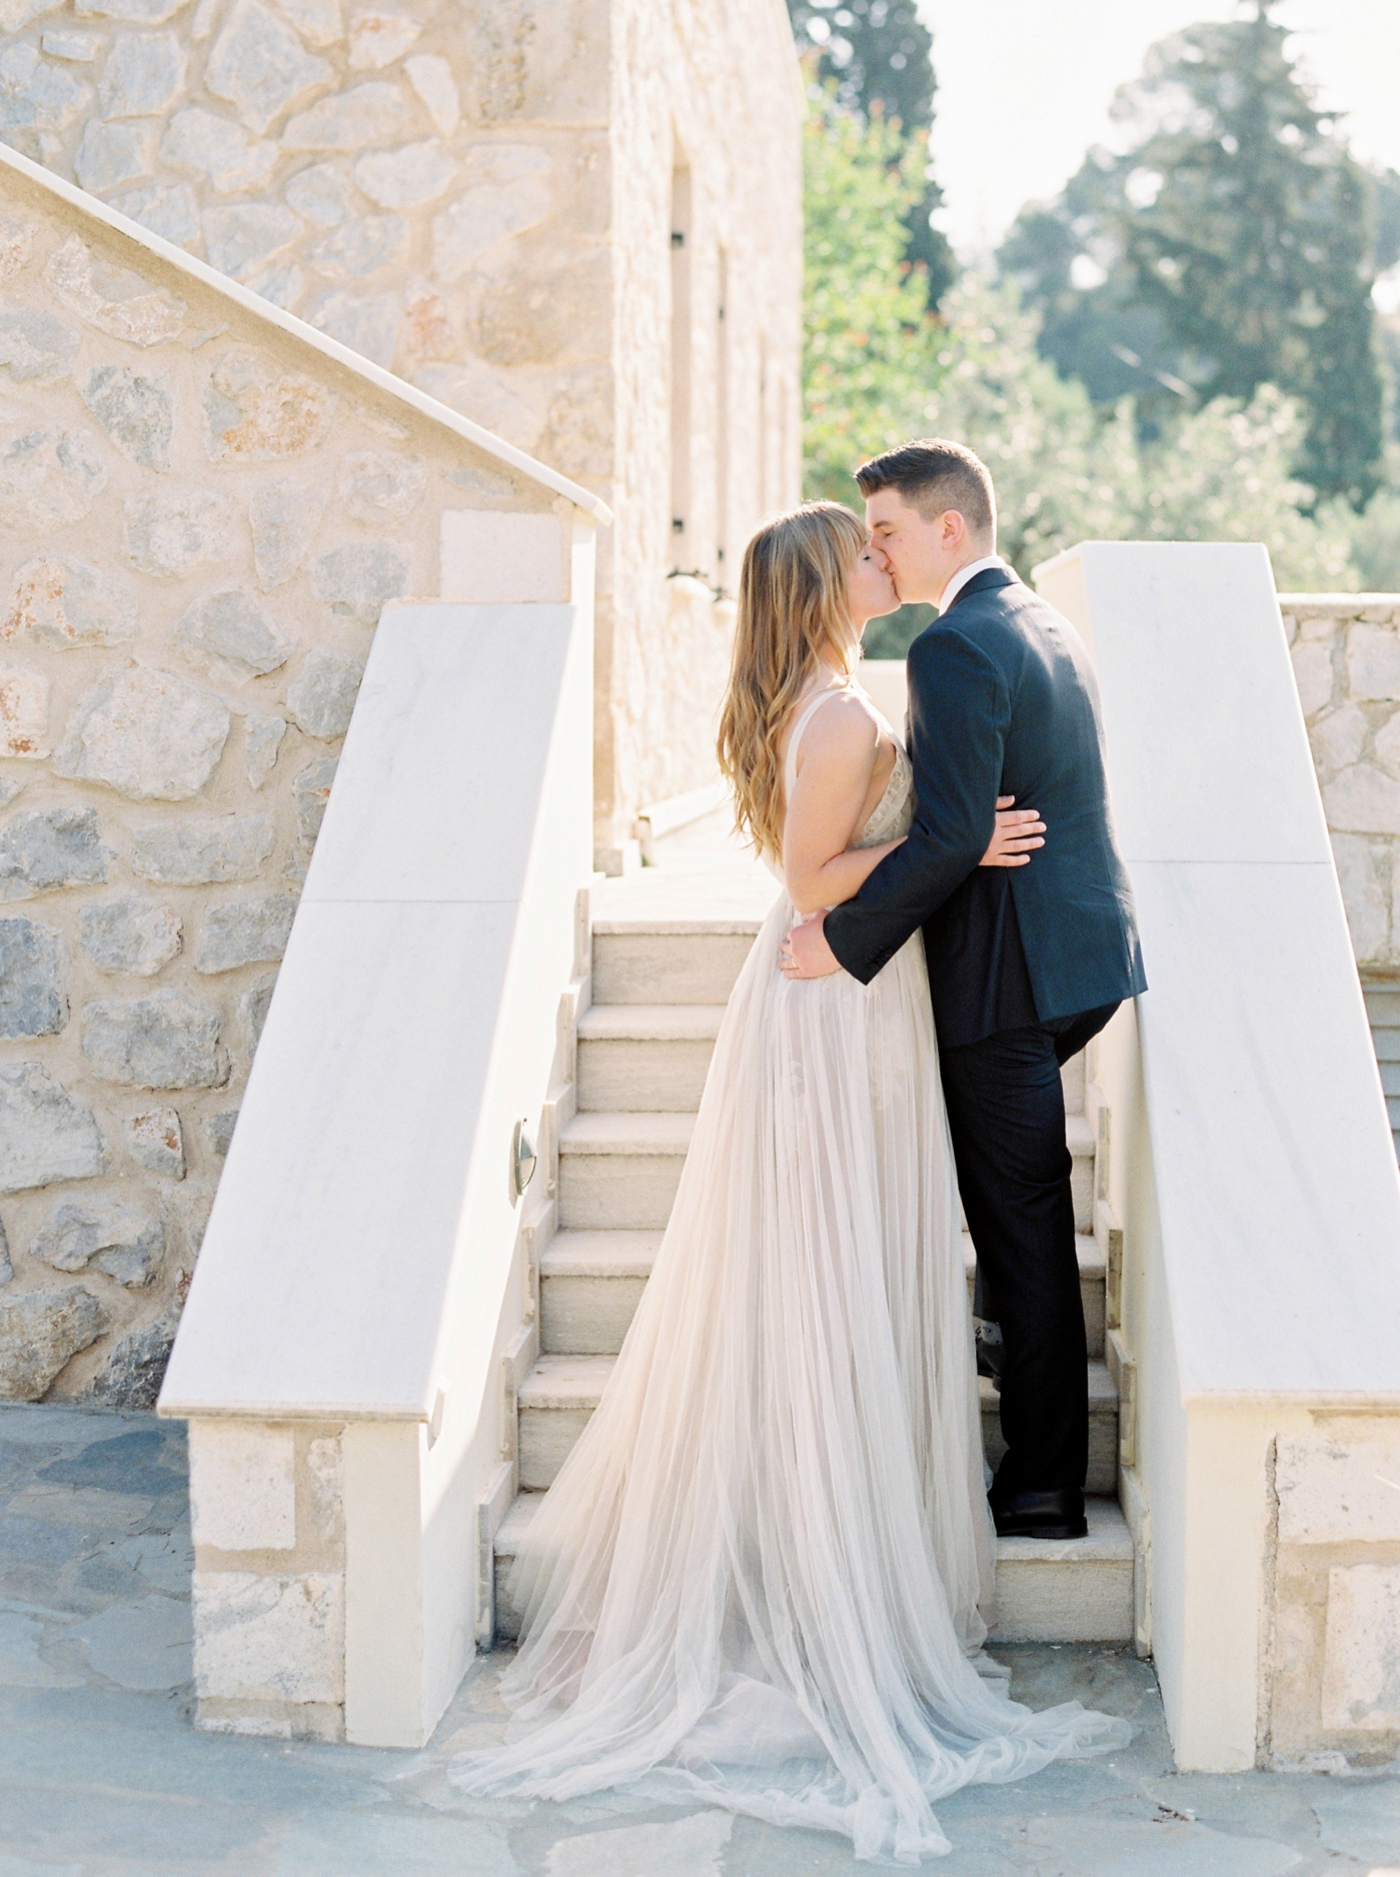 Greece wedding photographers | bride and groom in an olive grove | samuelle couture wedding dress